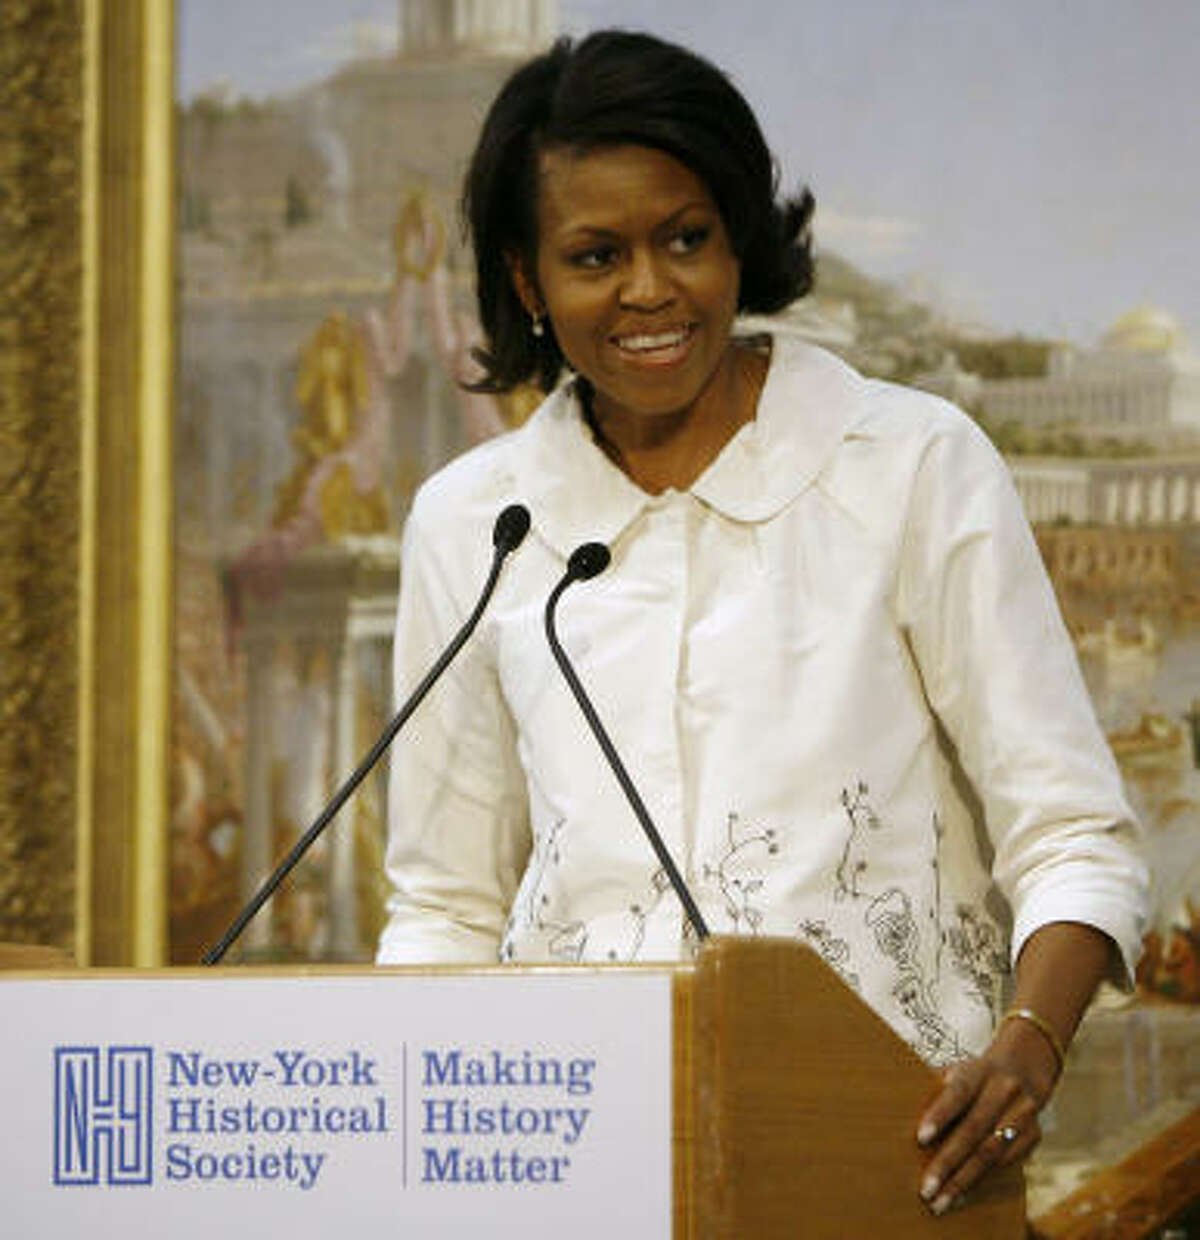 Some call Michelle Obama's style classic, like Jackie O, but with a twist.